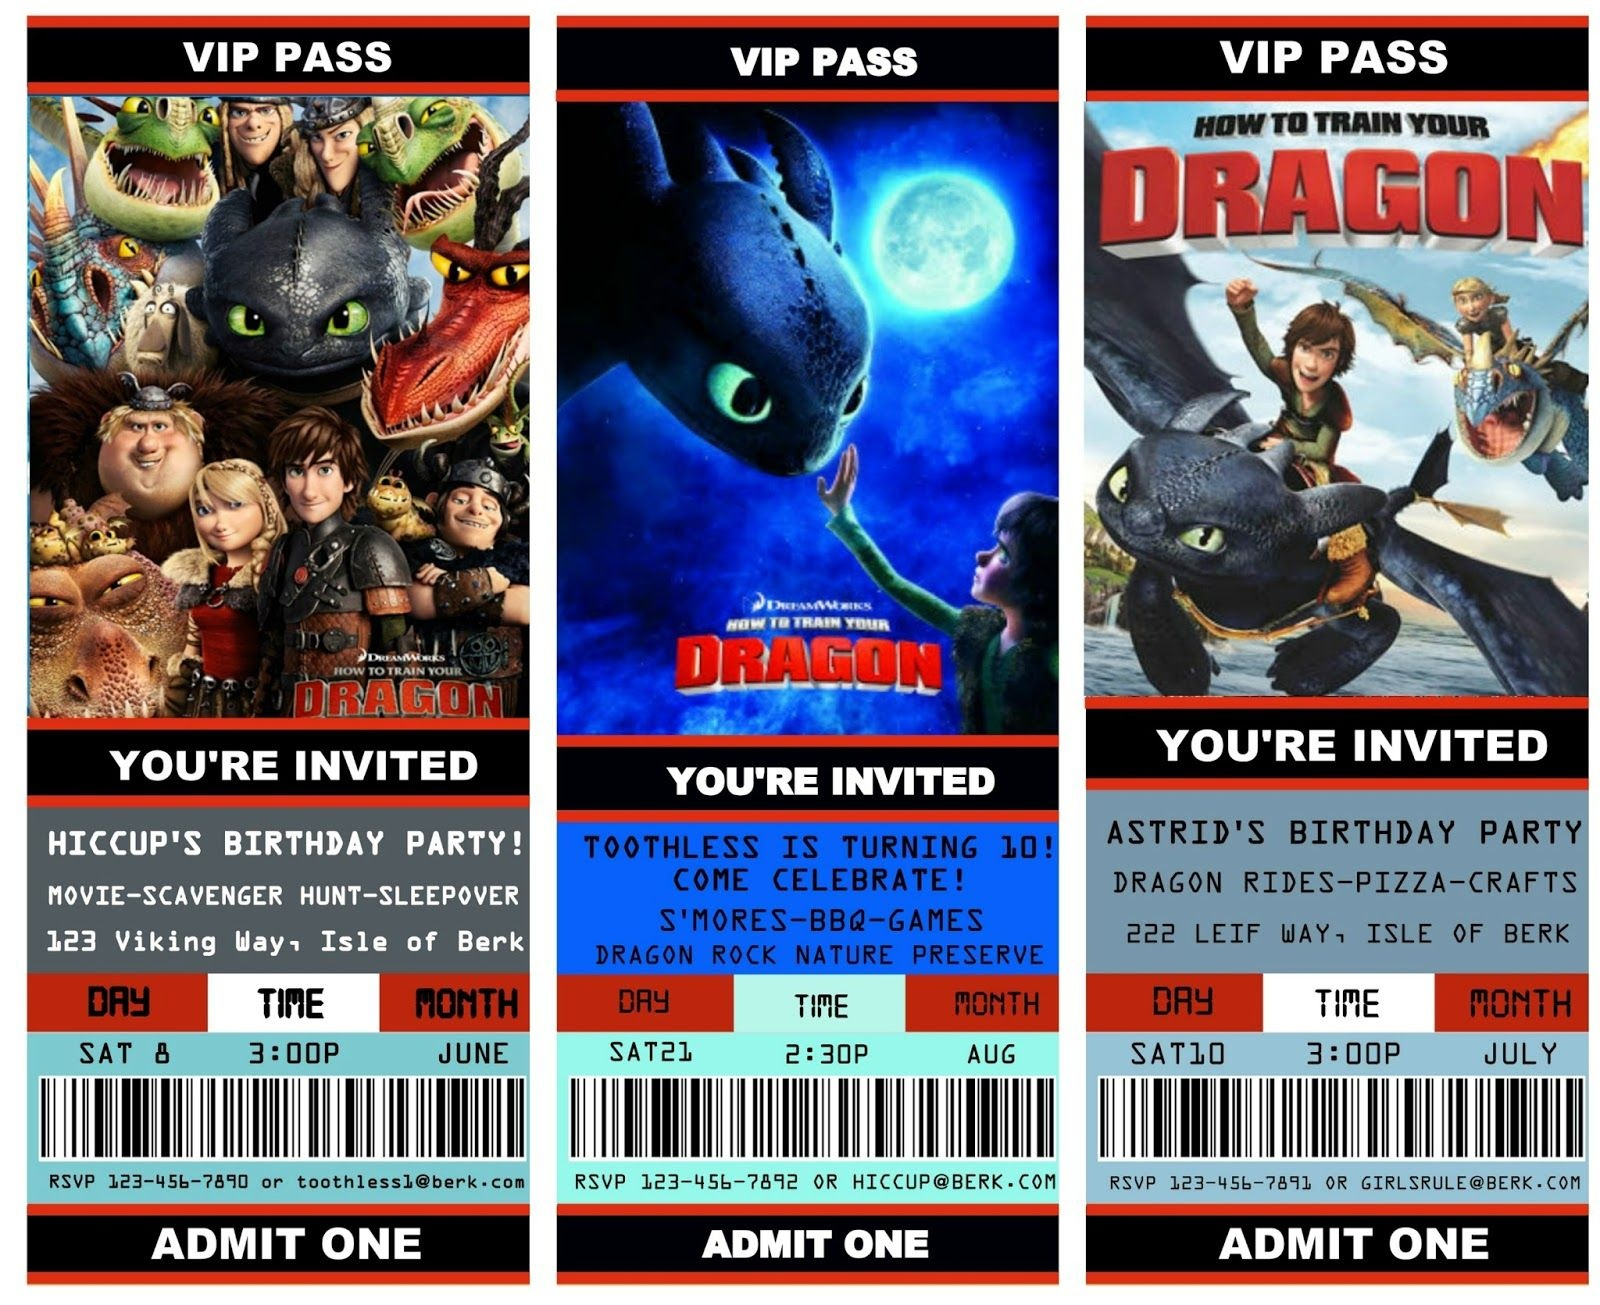 How To Train Your Dragon Birthday Invitations Printable Here Are - How To Train Your Dragon Birthday Invitations Printable Free